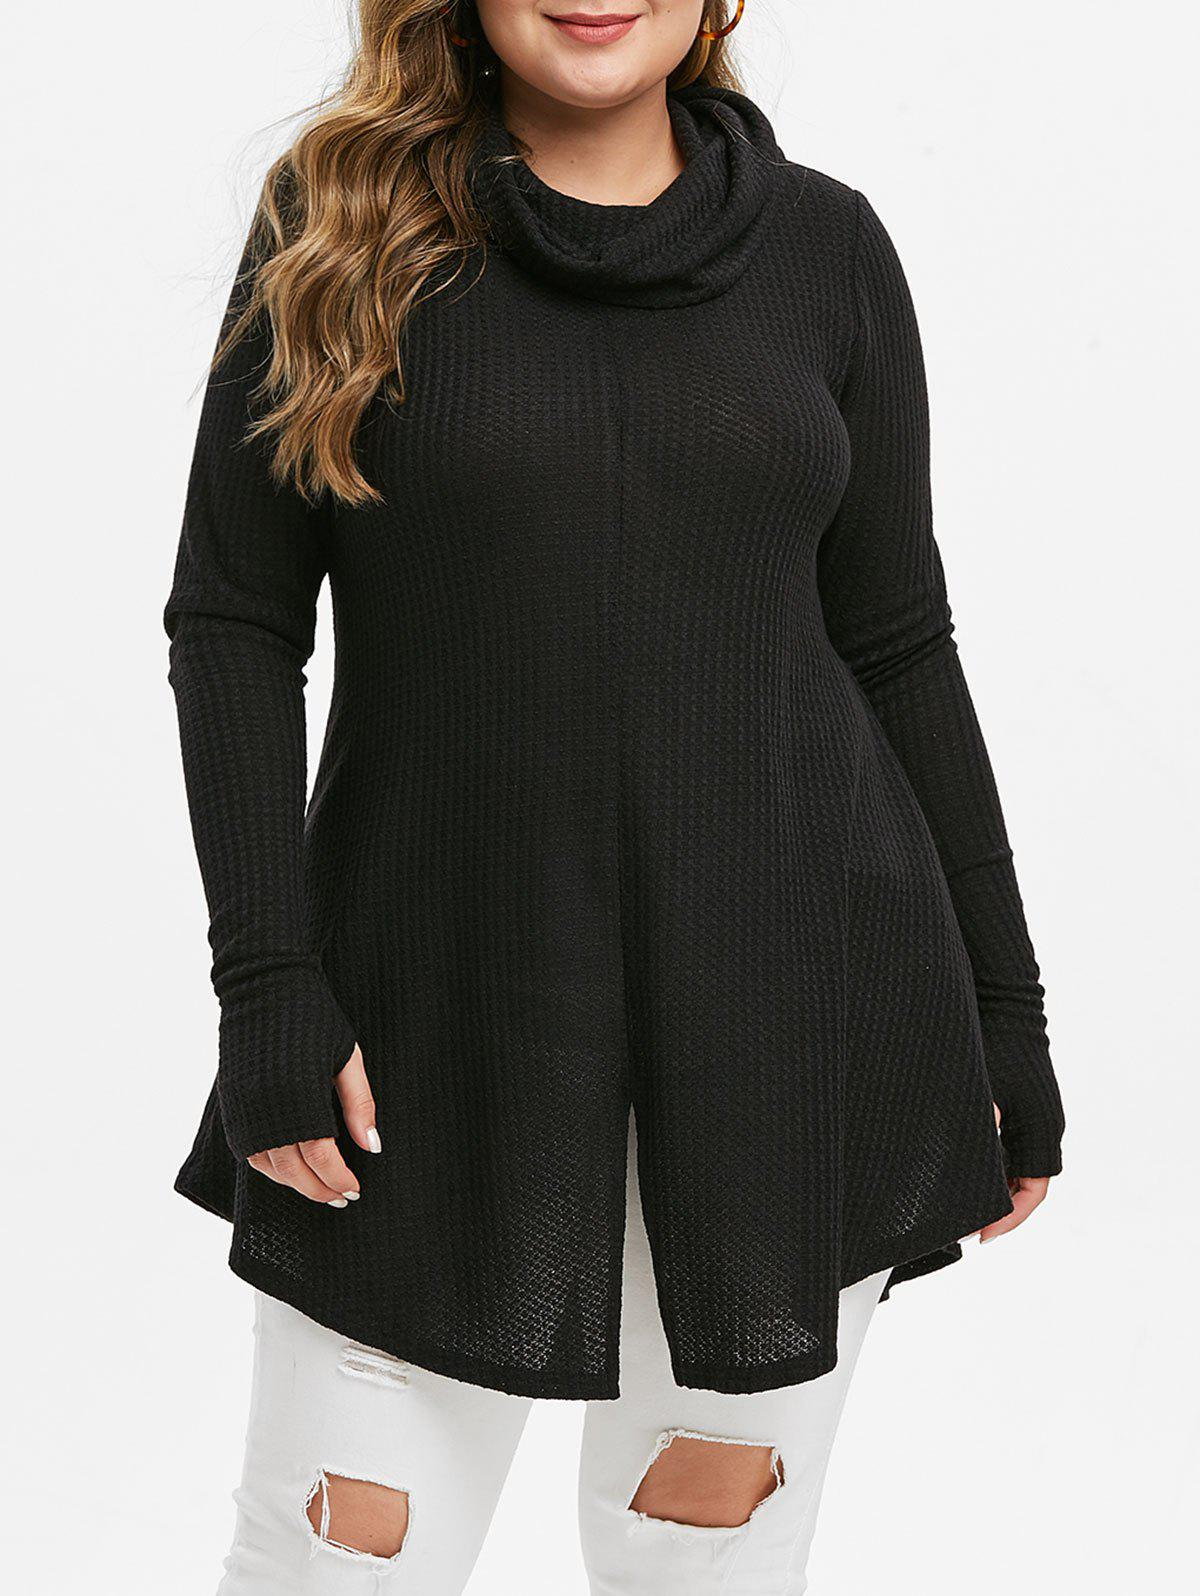 Plus Size Cowl Neck Slit Tunic Knitwear - BLACK 1X